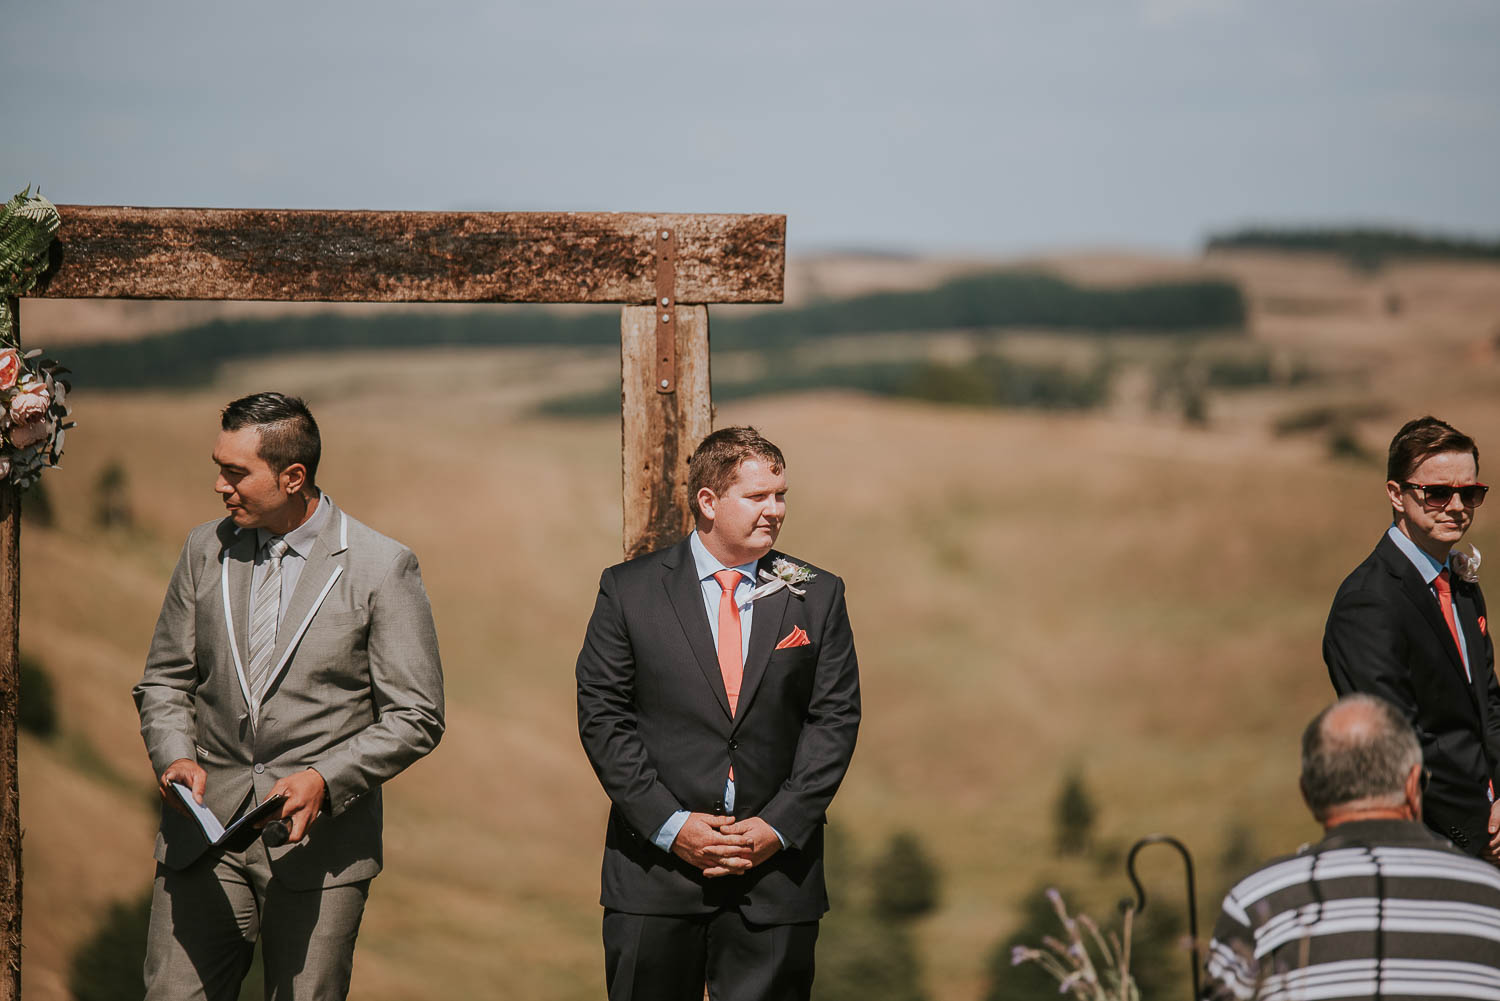 James-Melinda-Rustic-Farm-Auckland-Wedding-21.jpg